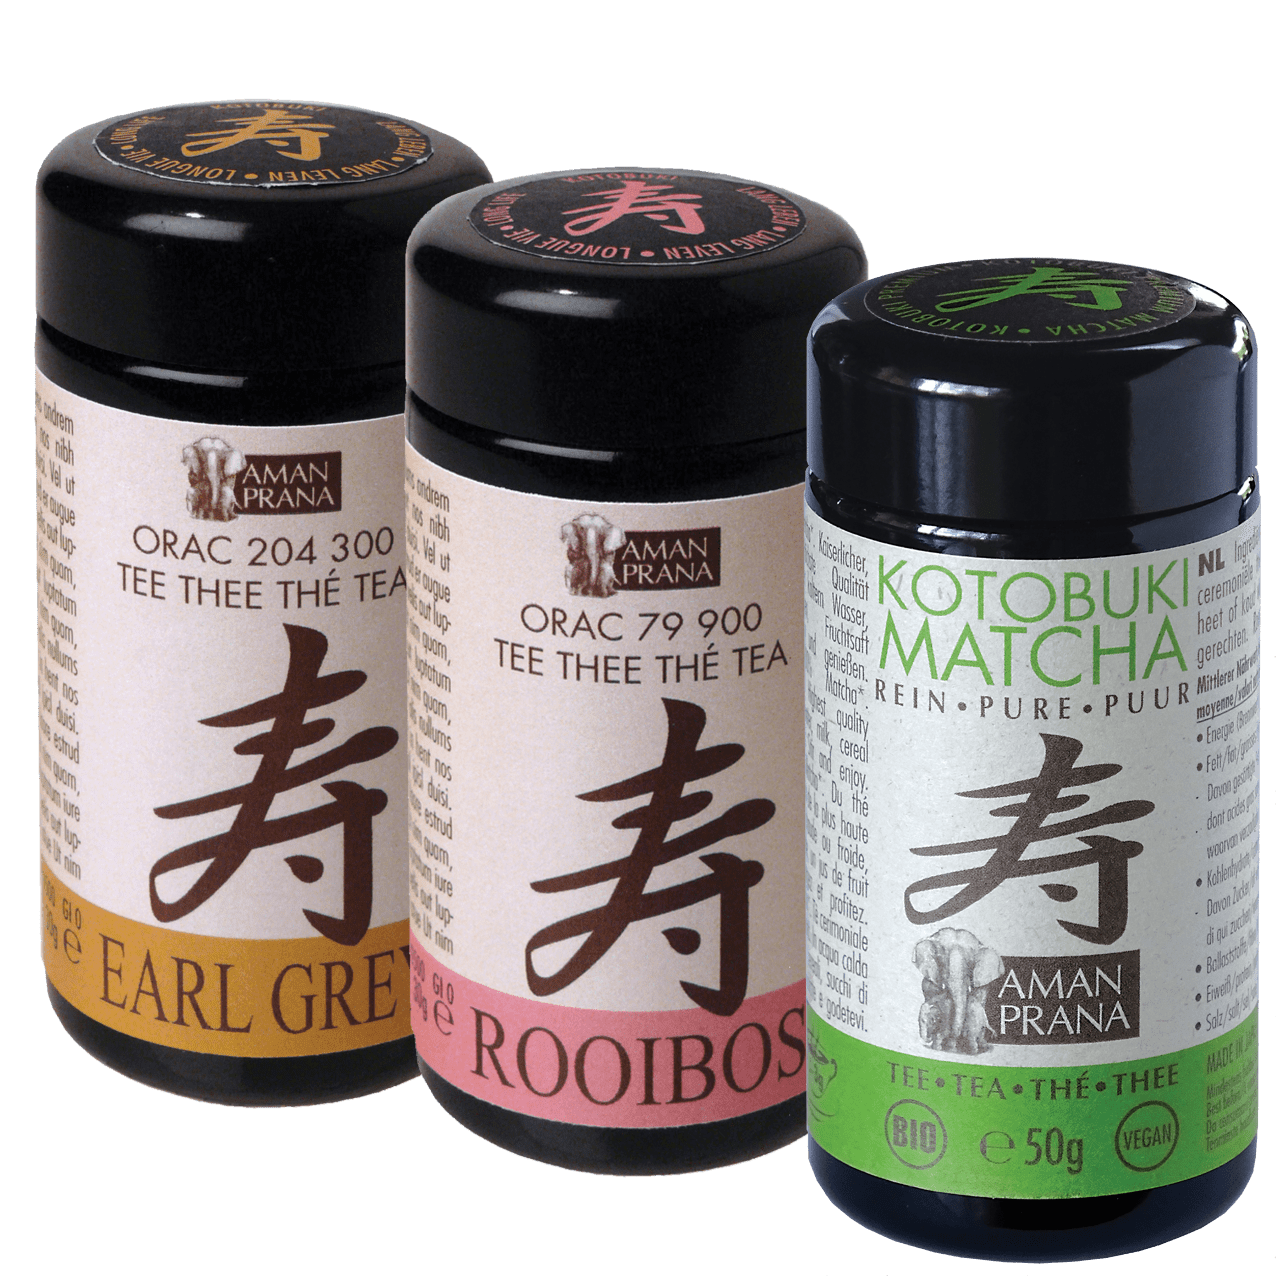 Sustainable Glass Packaging for the Amanprana Kotobuki Tea